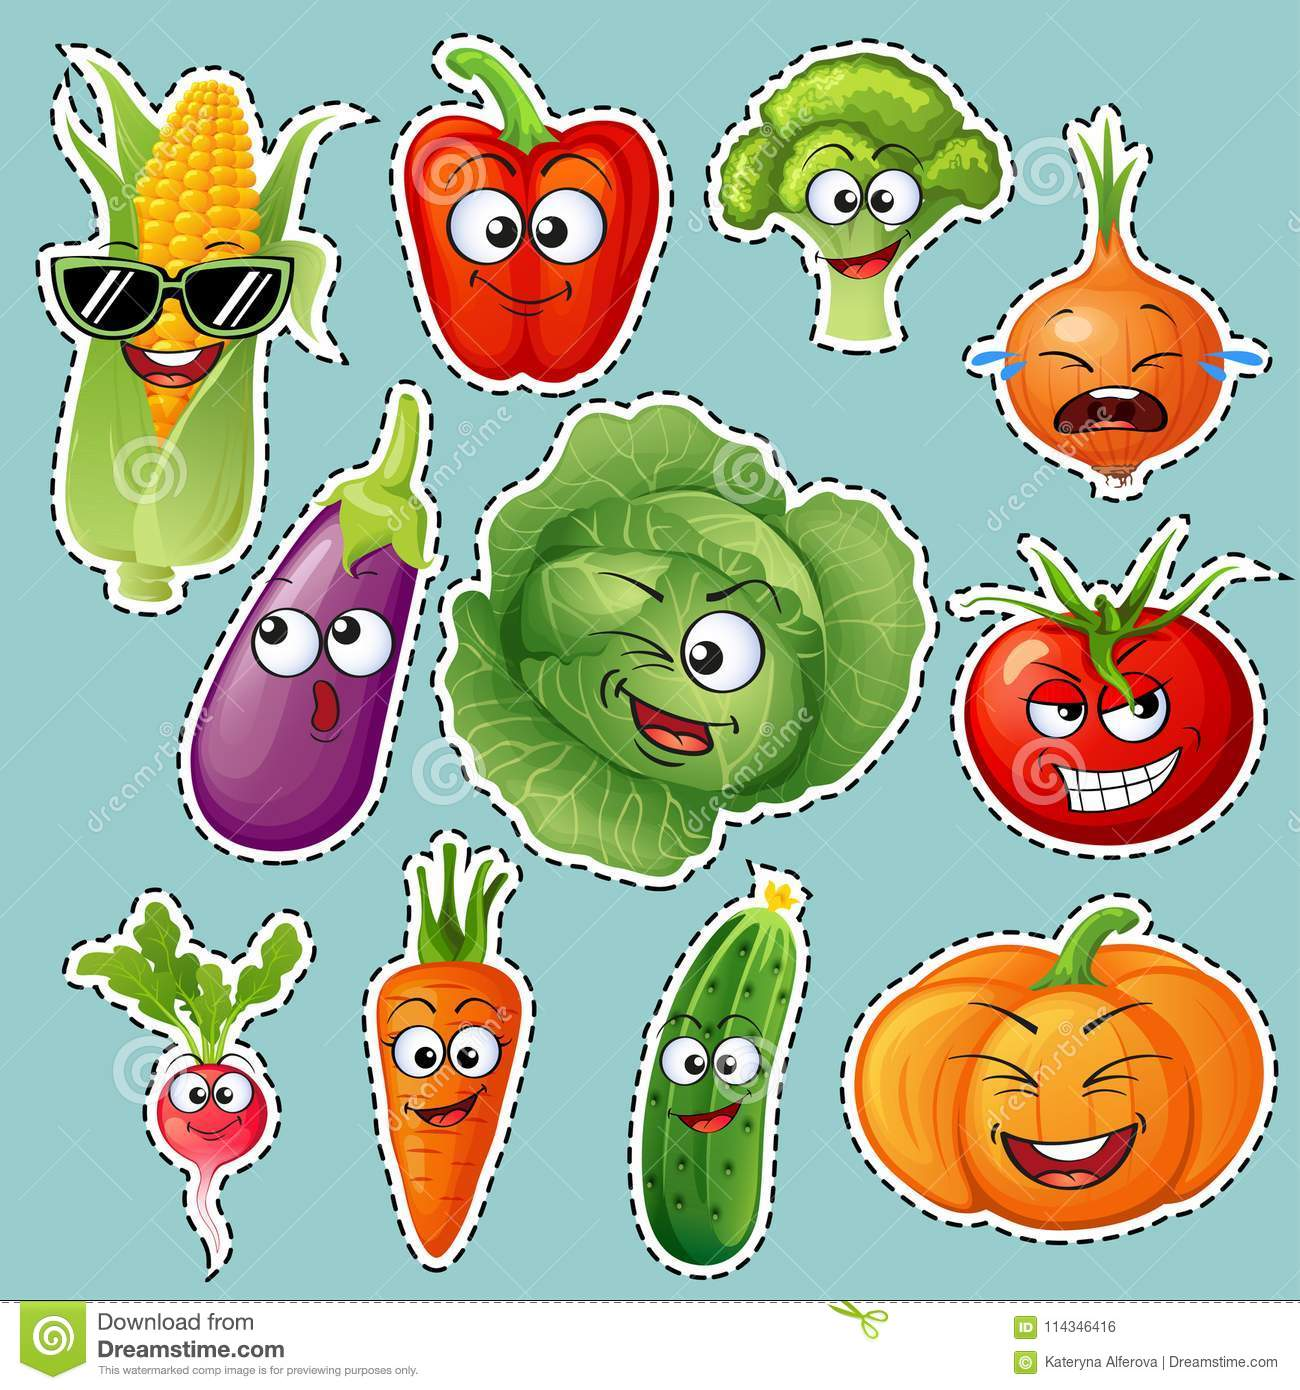 Cartoon vegetable characters. Vegetable emoticons. Sticker. Cucumber, tomato, broccoli, eggplant, cabbage, peppers, carrots, onion